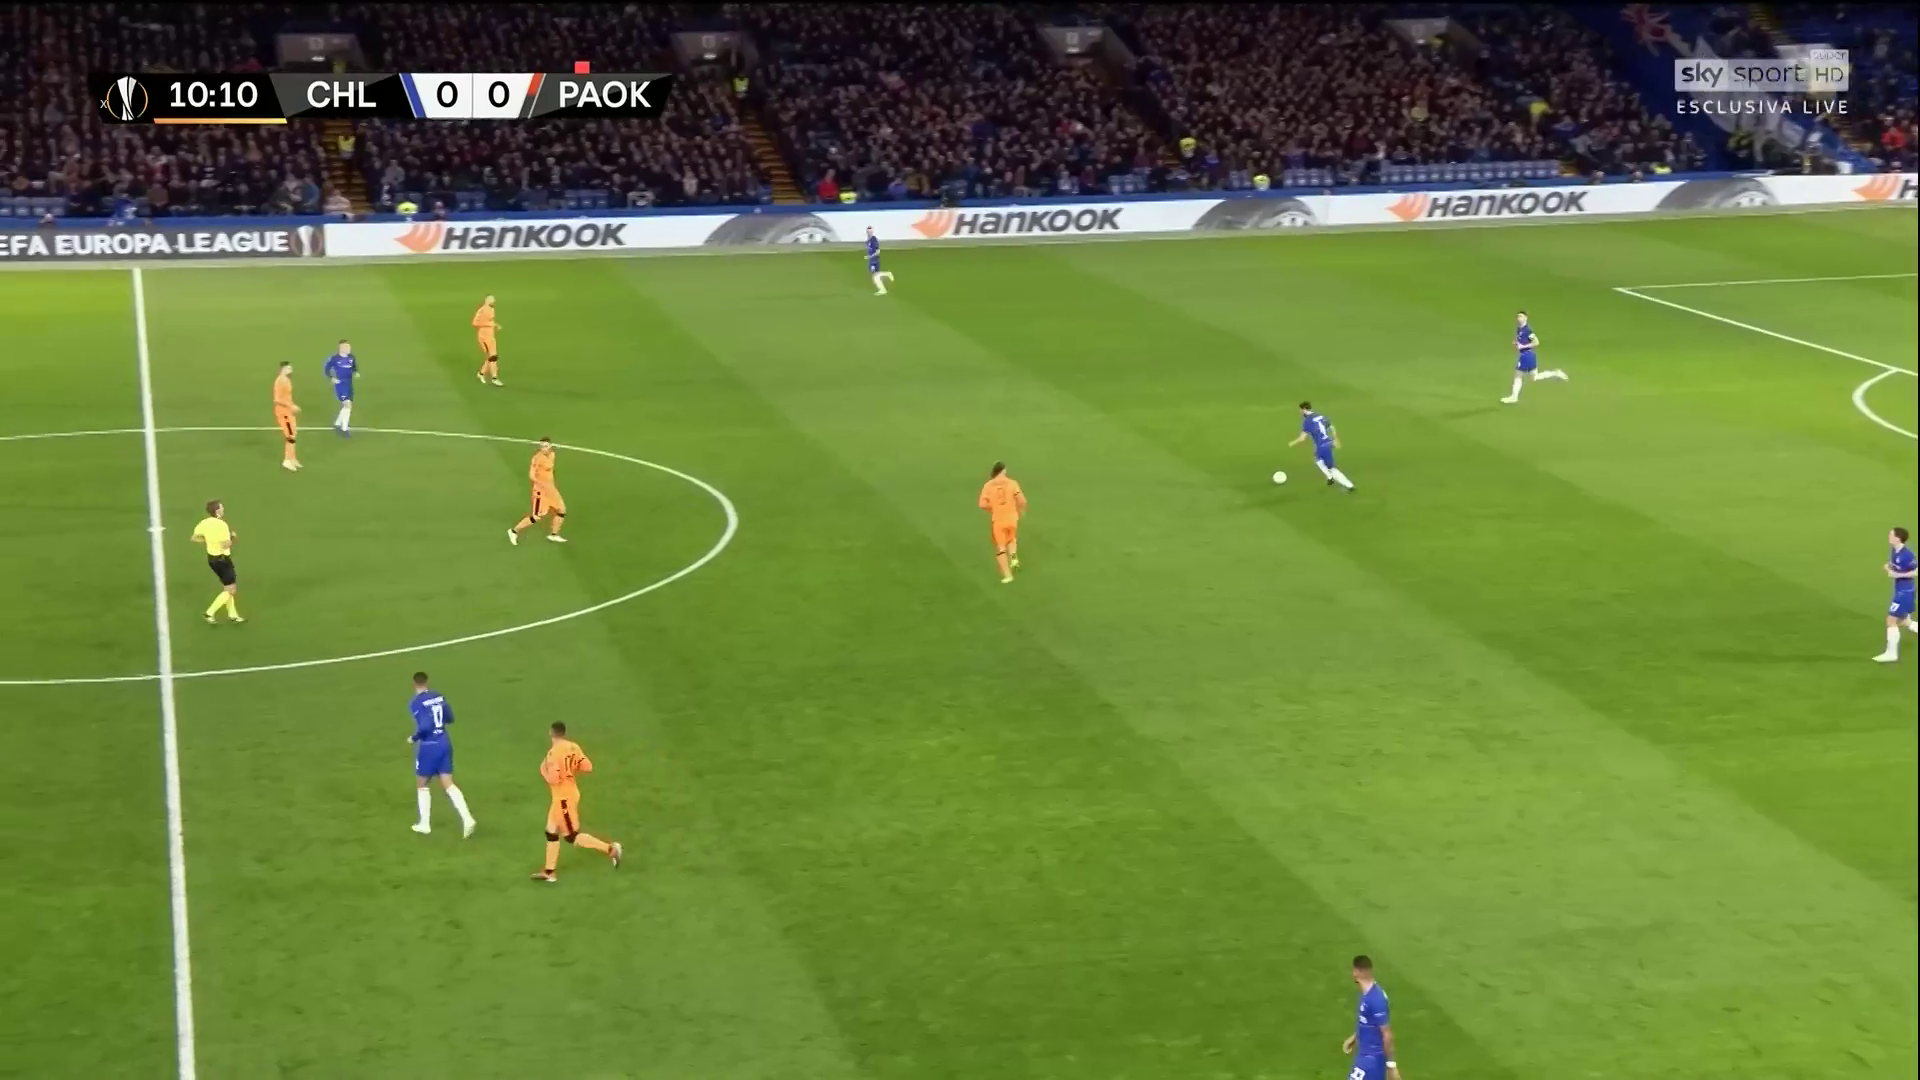 Chelsea PAOK Match Analysis